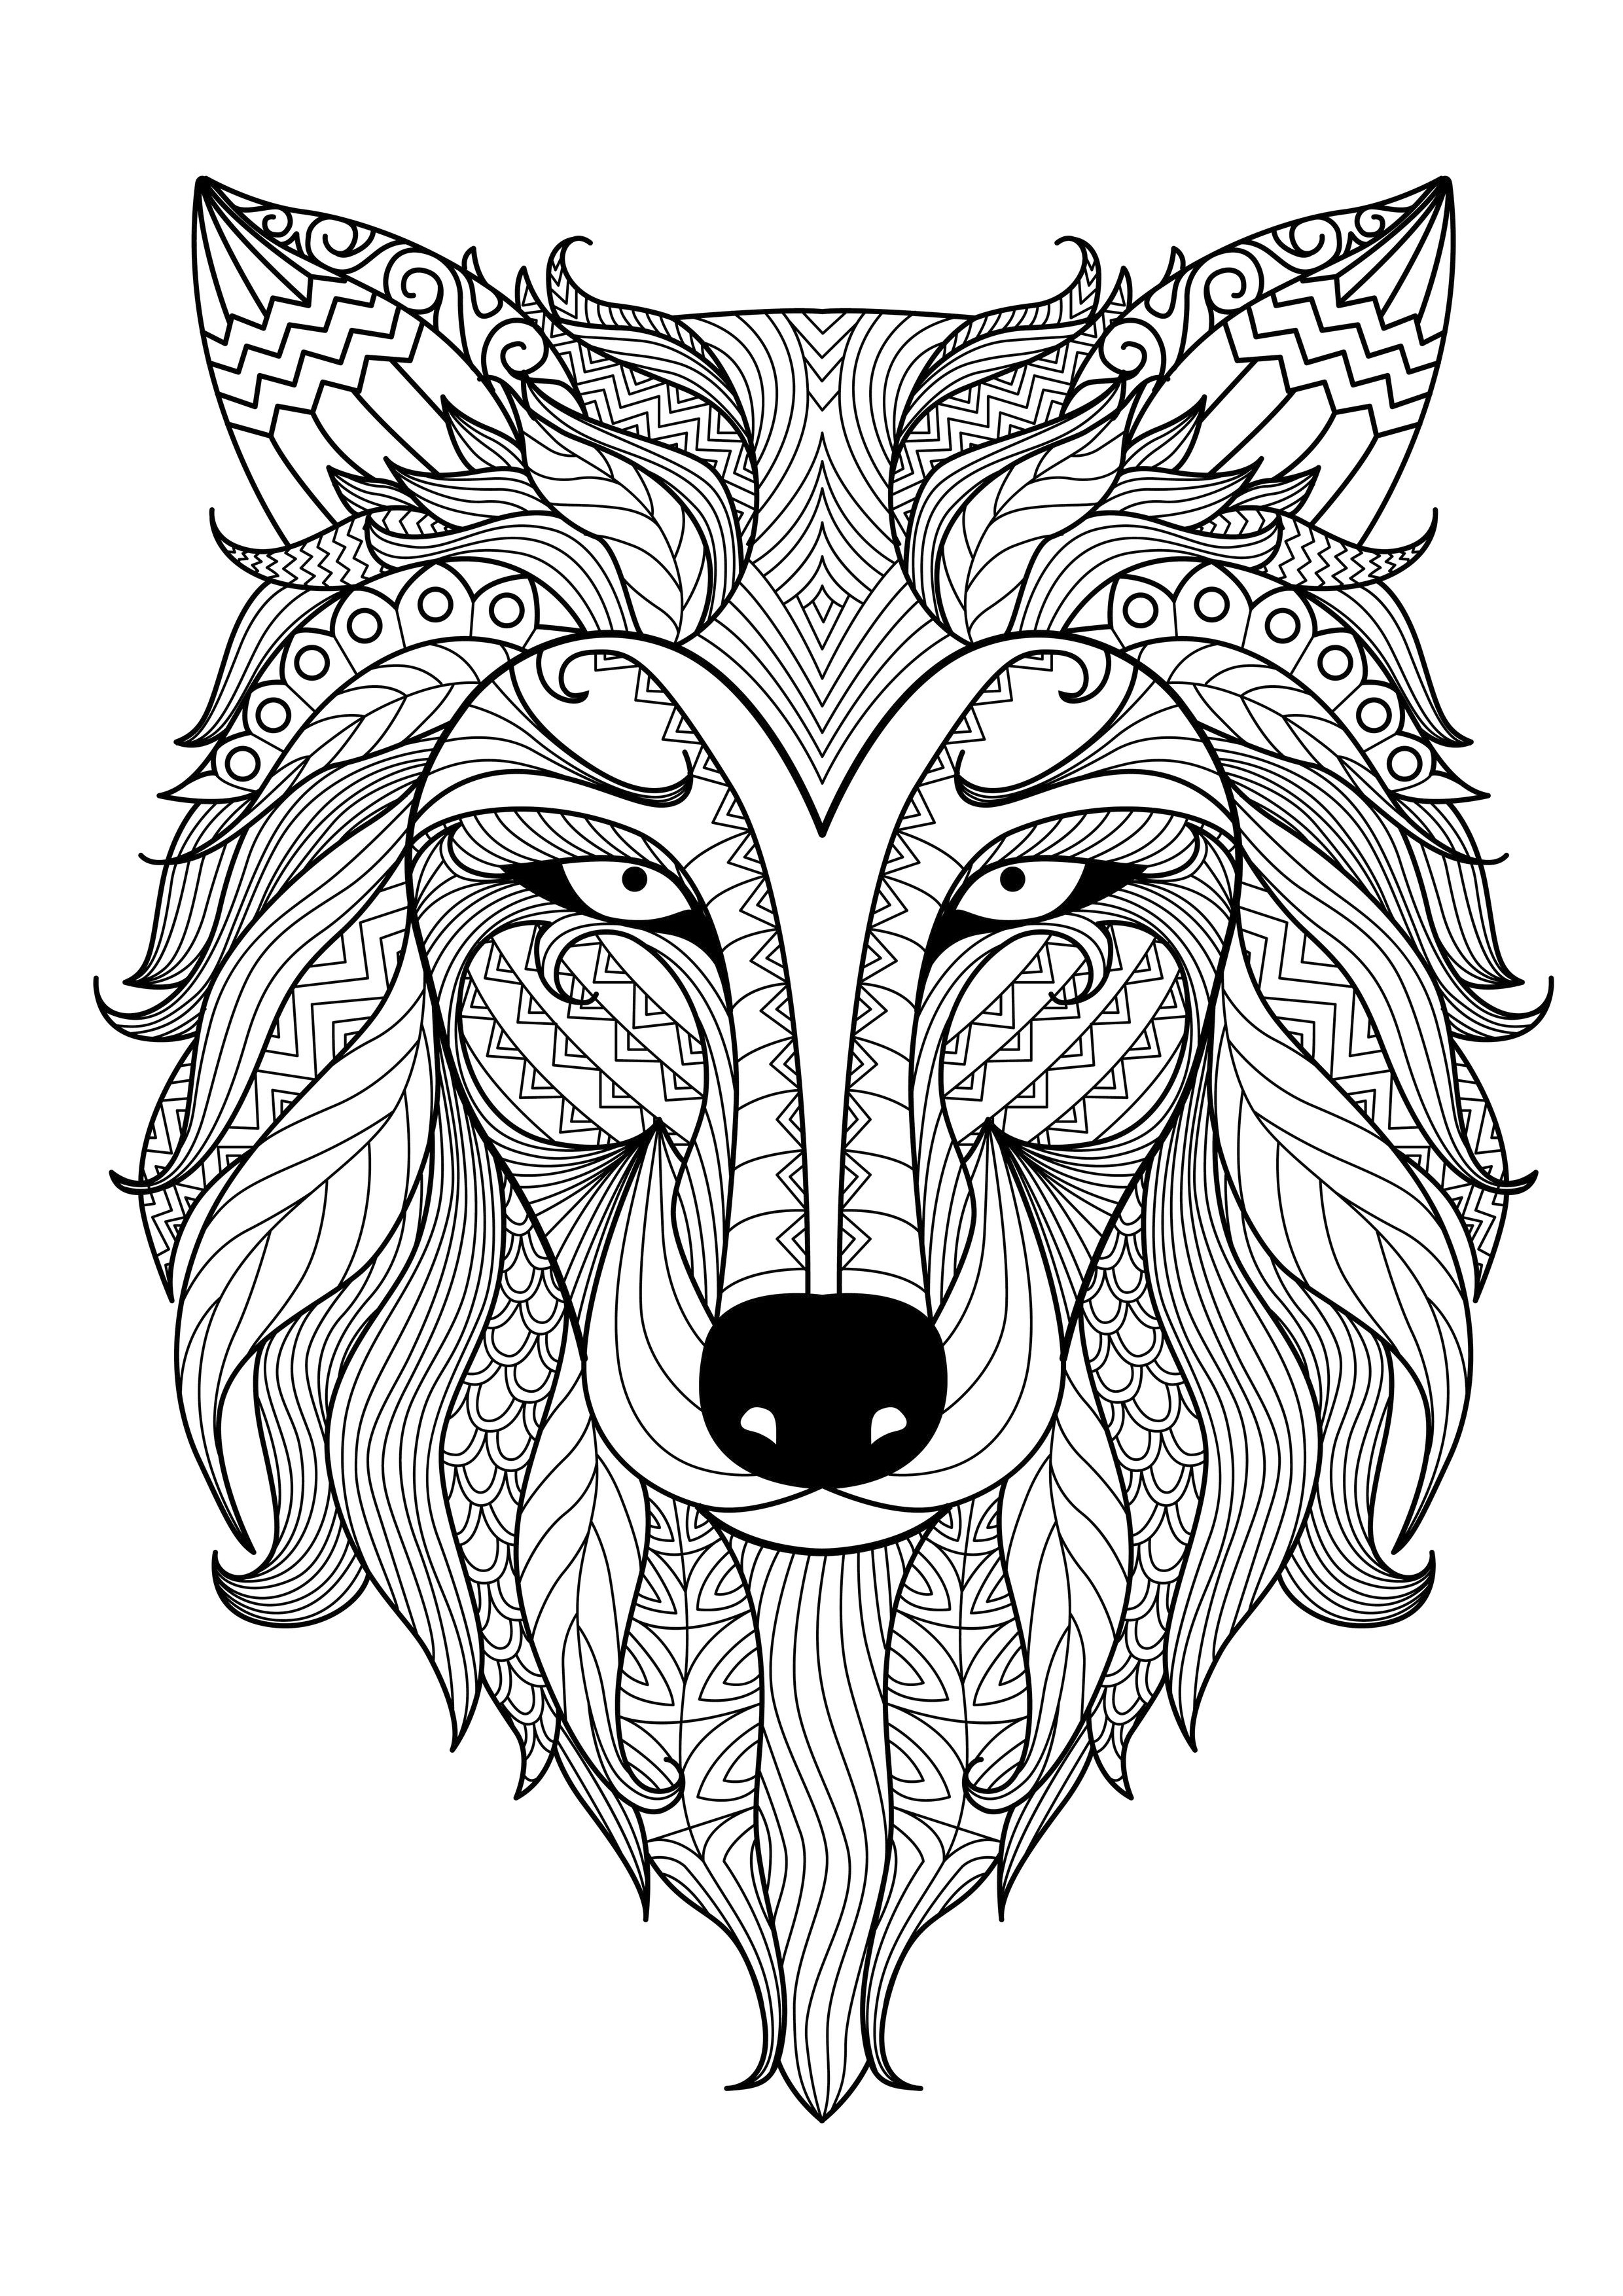 Coloring Pages Coloring Pages Of Animals For Adults adult coloring pages animals futpal com futpal